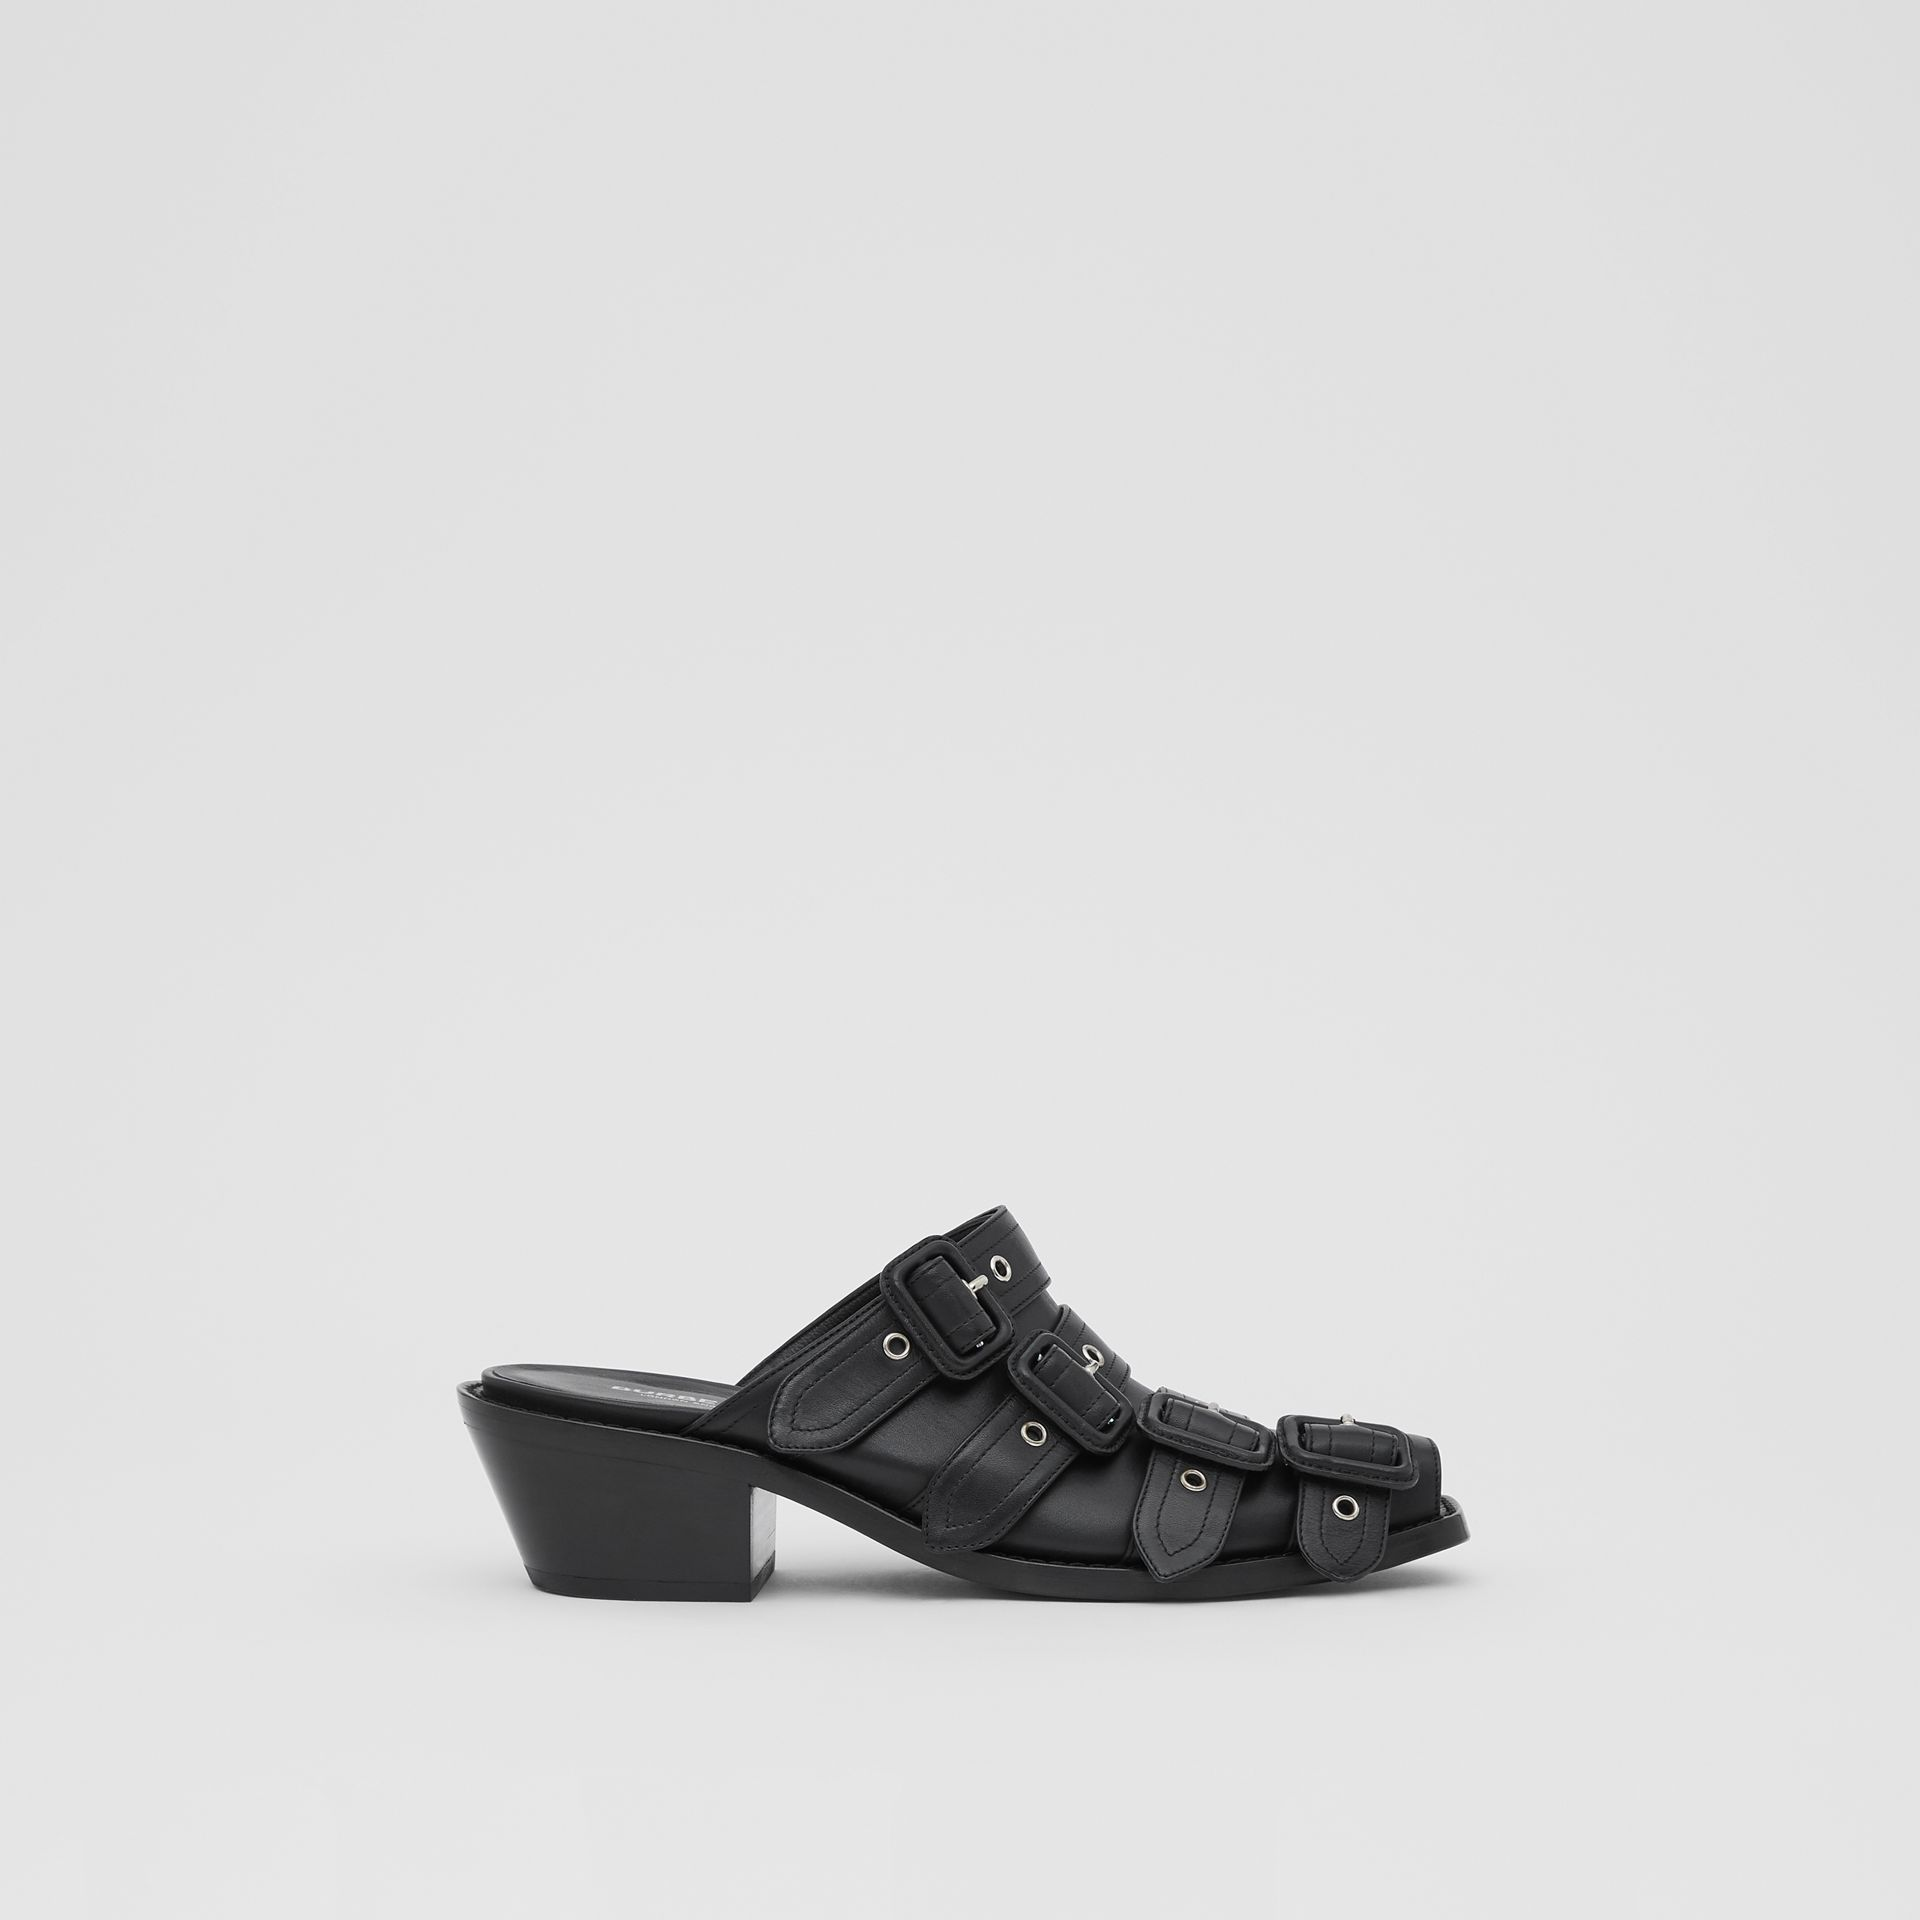 Buckled Leather Peep-toe Mules in Black - Women | Burberry Australia - gallery image 4